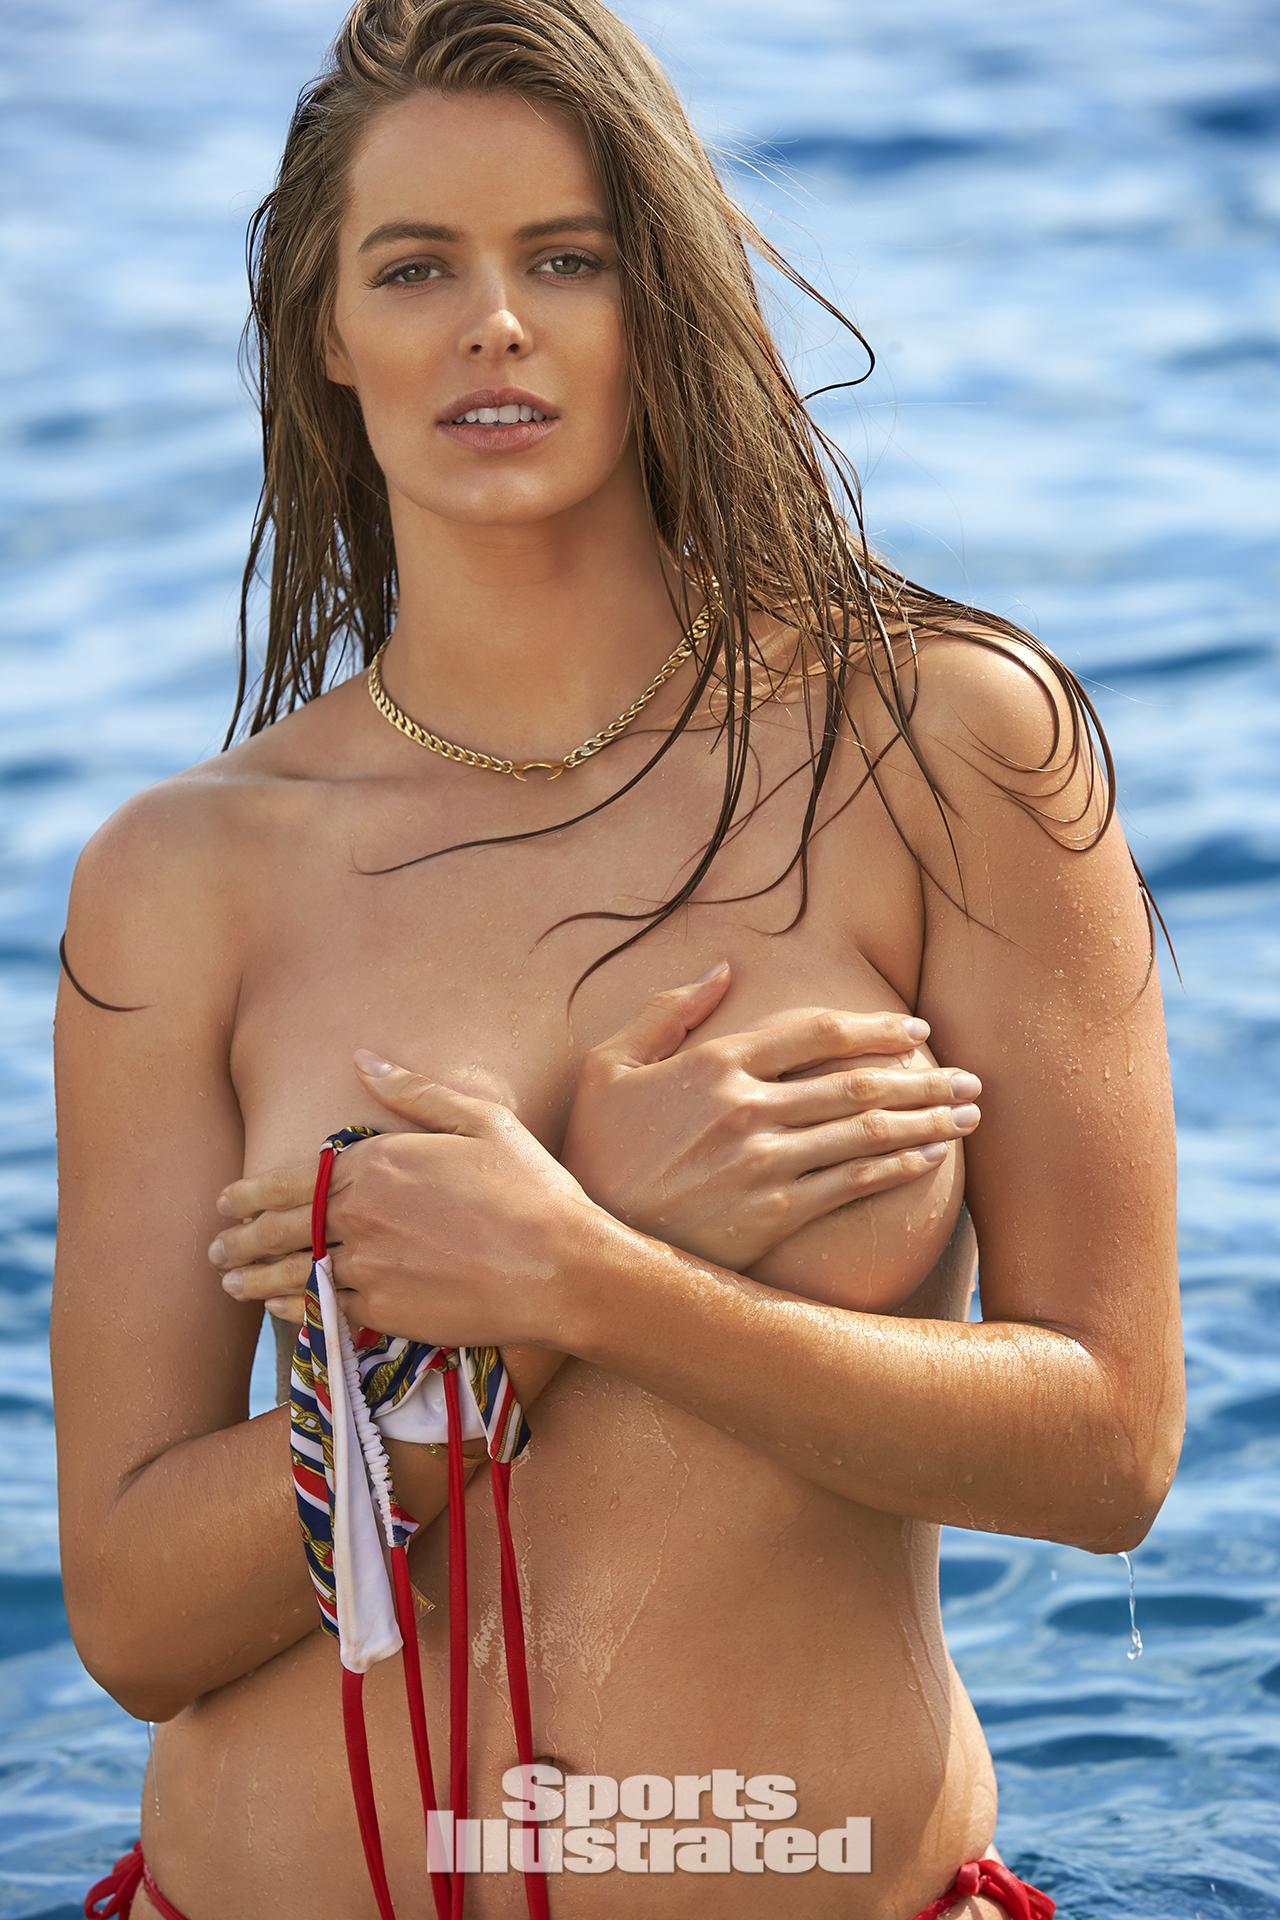 Swimsuit illustrated nude Nude Photos 2